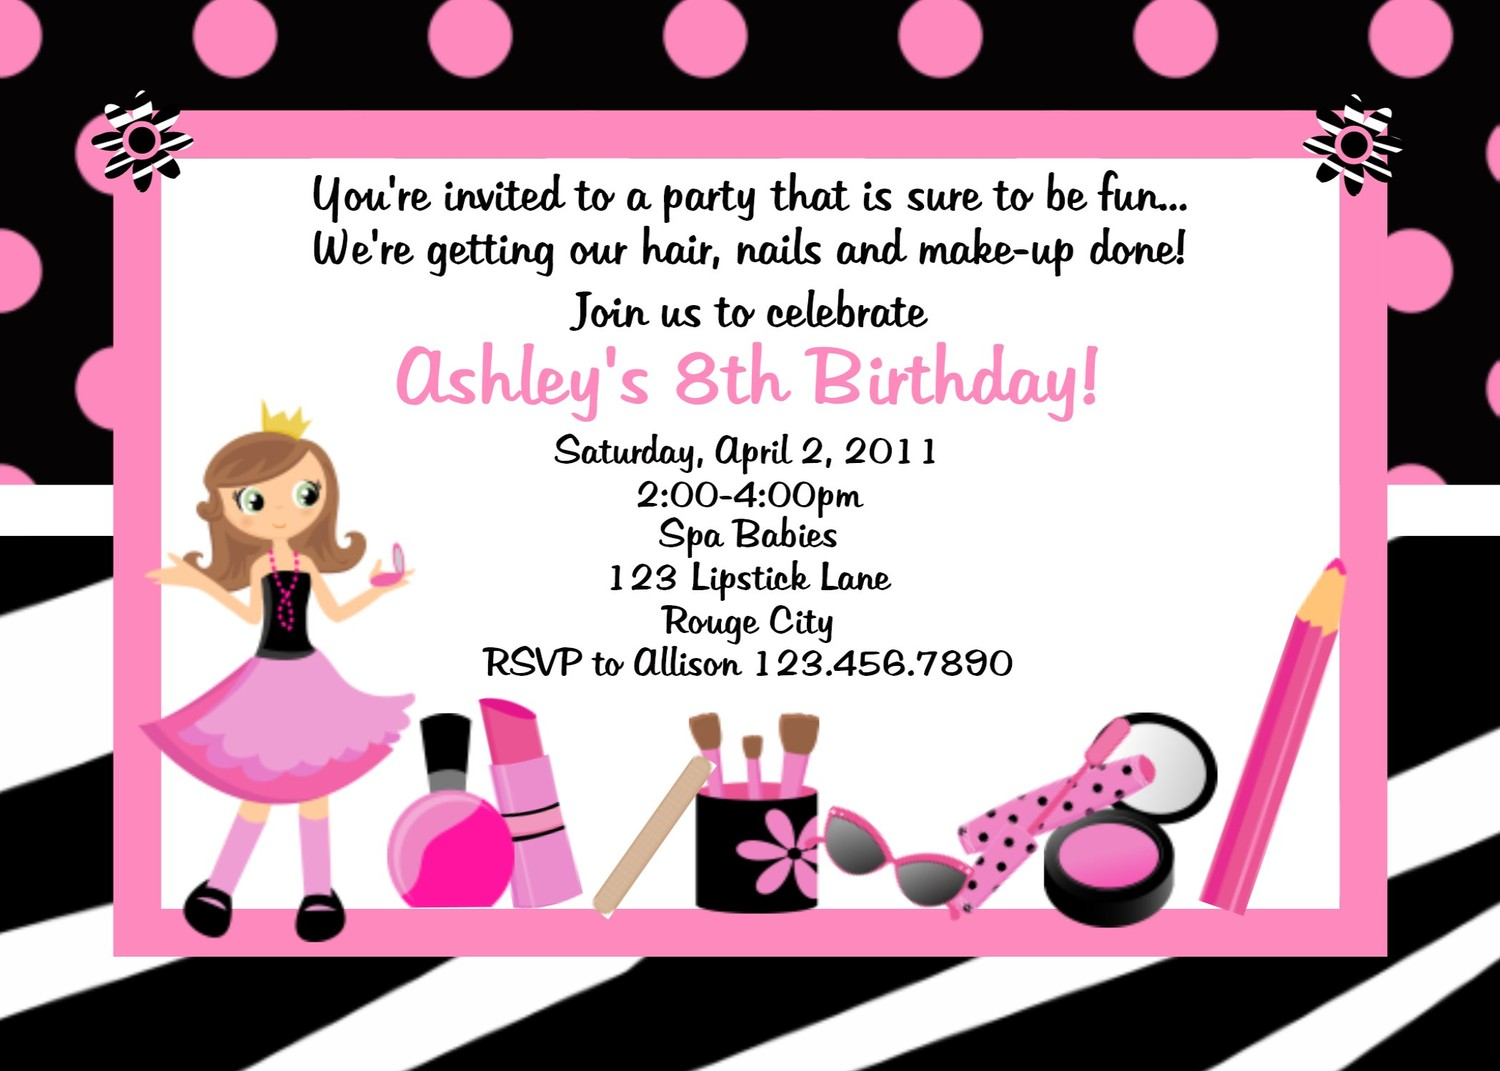 Girls Birthday Party Invitations, Glamour Spa Theme Parties